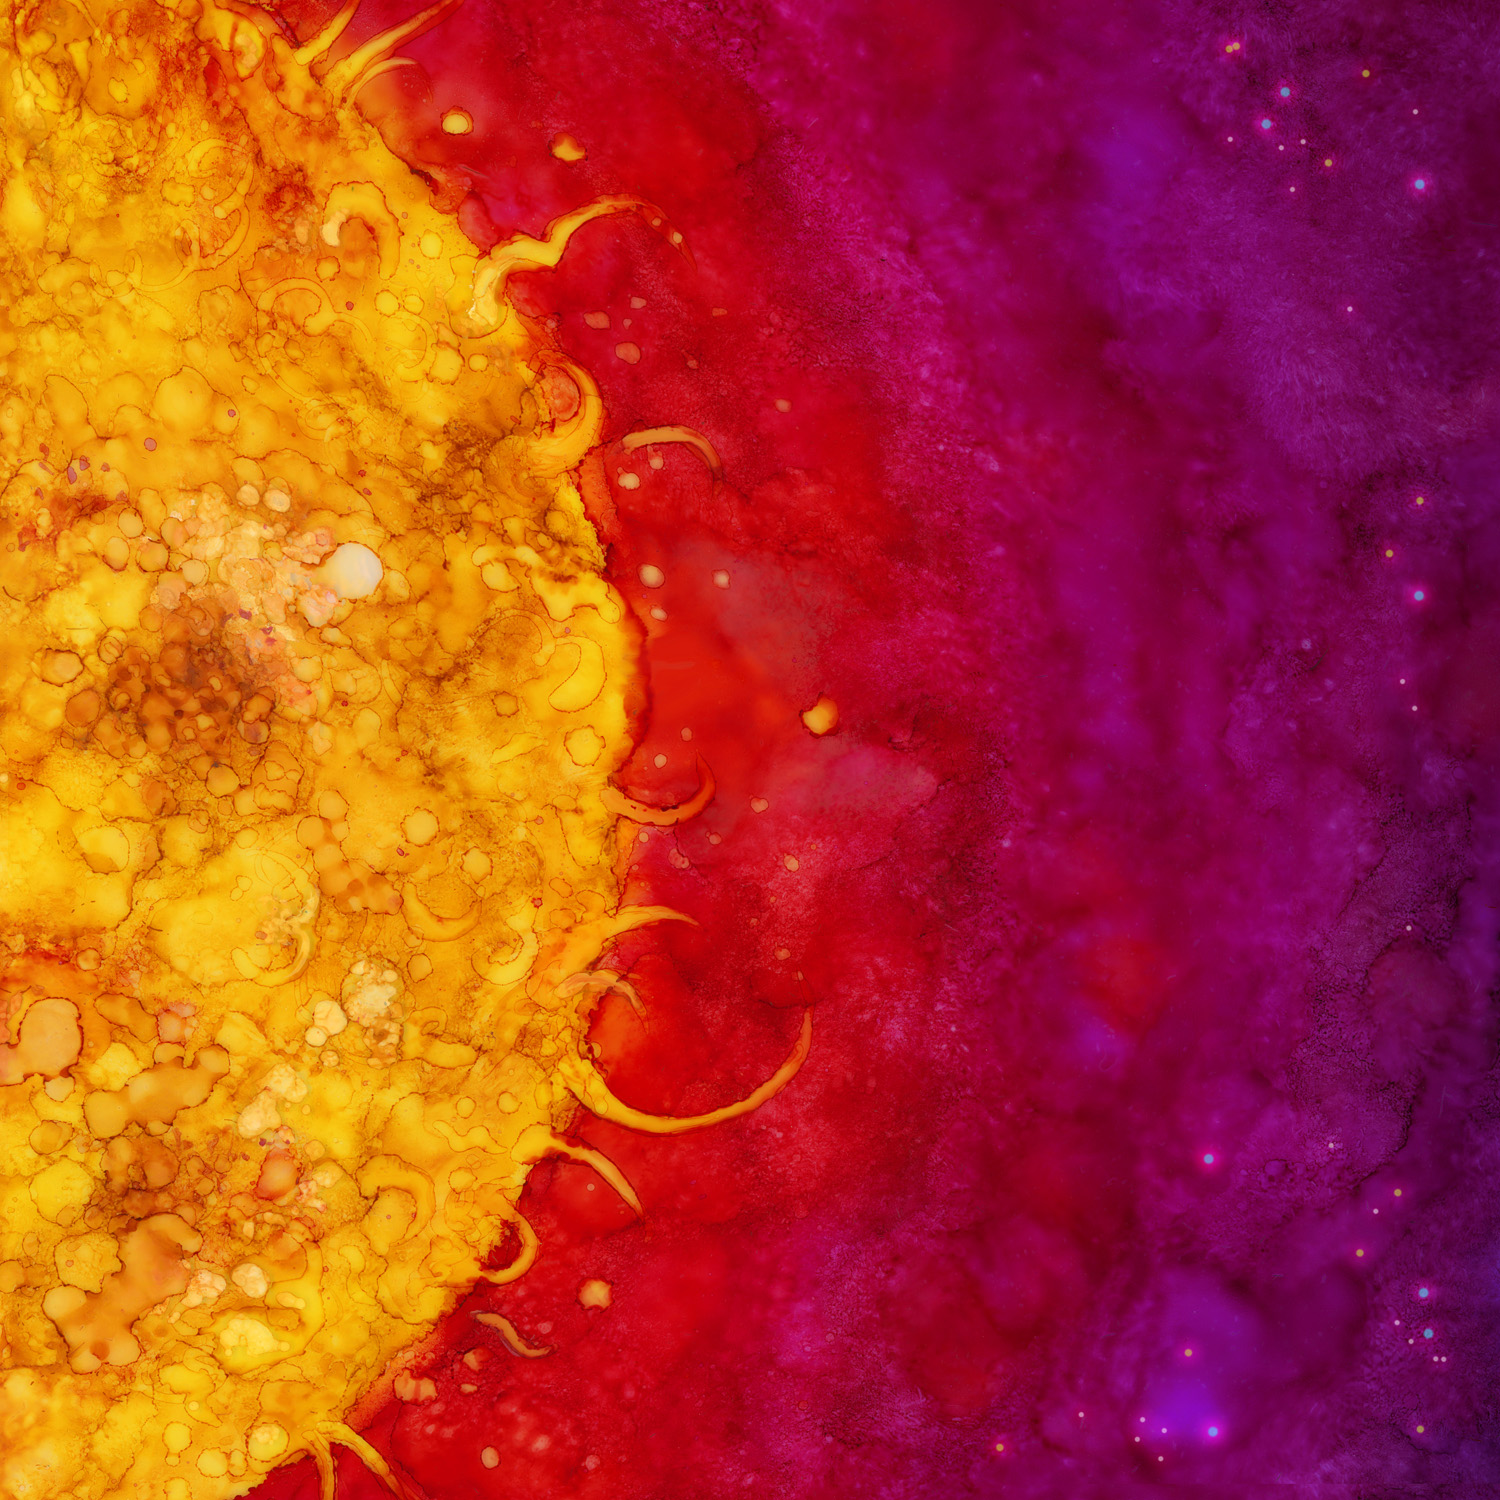 Sun  Alcohol Ink, Photoshop